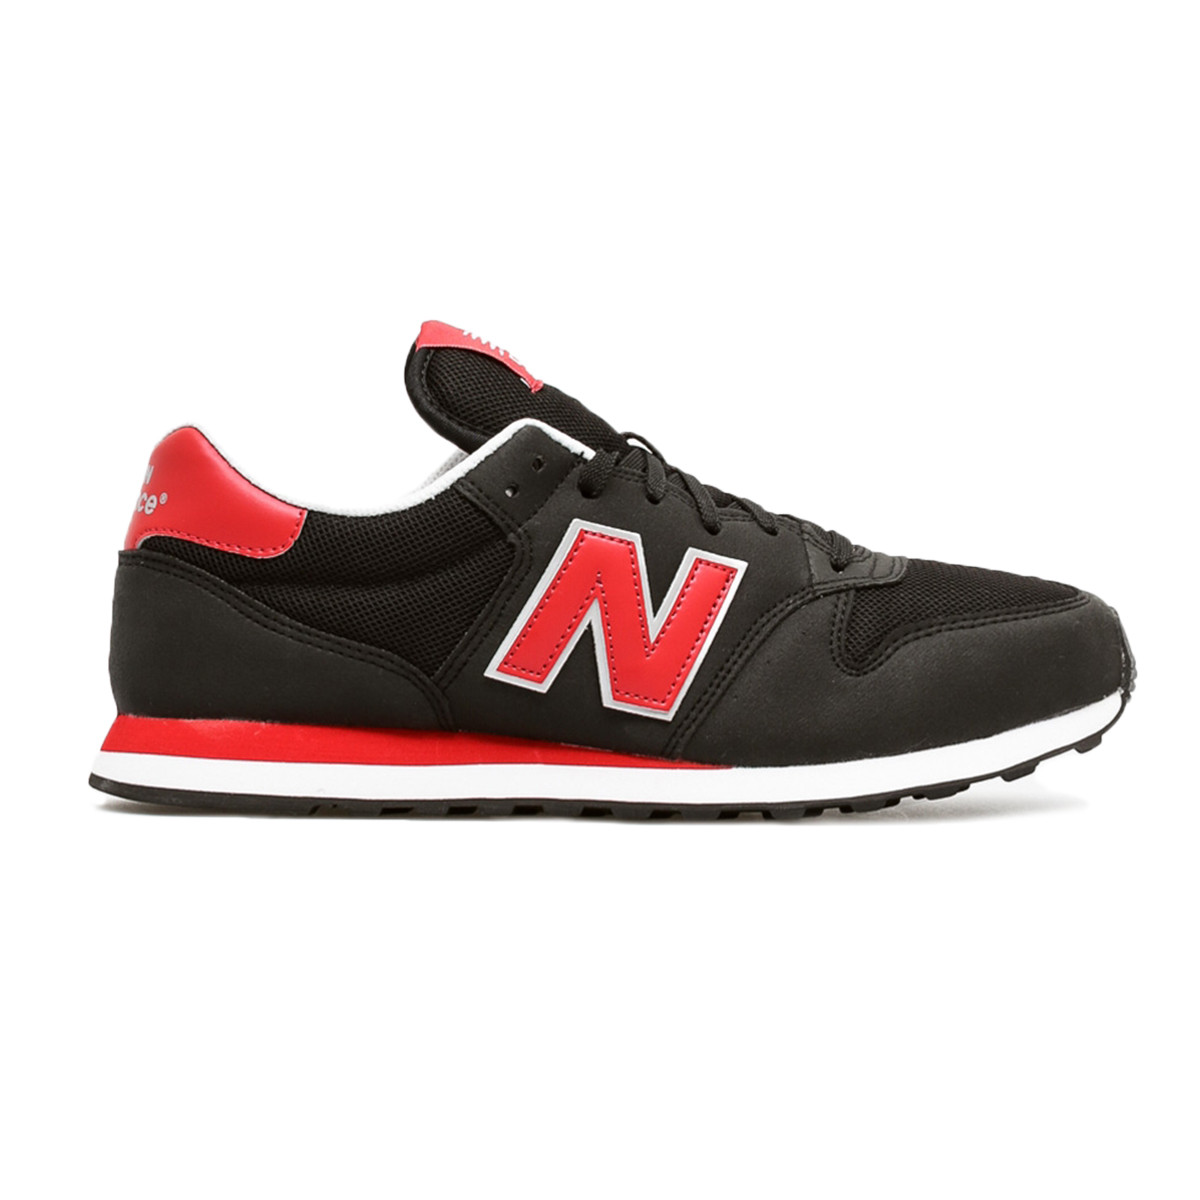 New Balance Gm500 Chaussure Homme  - Chaussures Baskets basses Homme